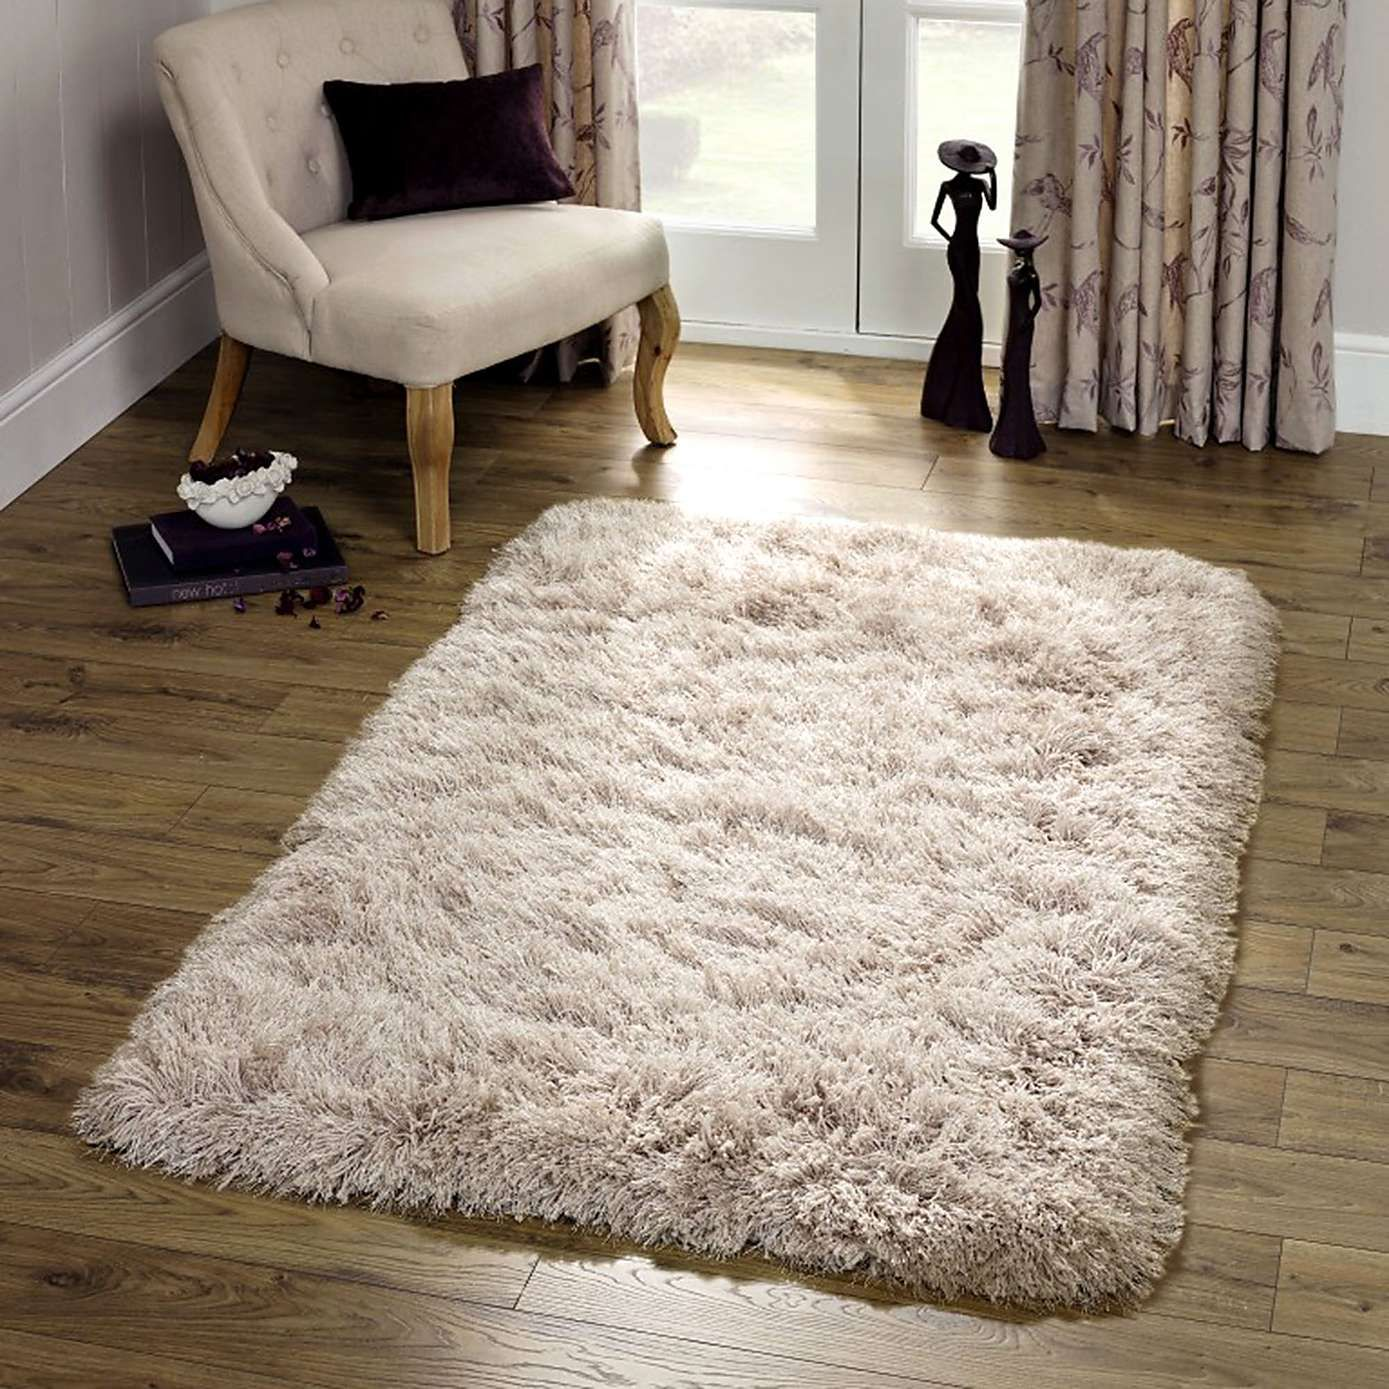 Divine Shaggy Rug Dunelm With Images